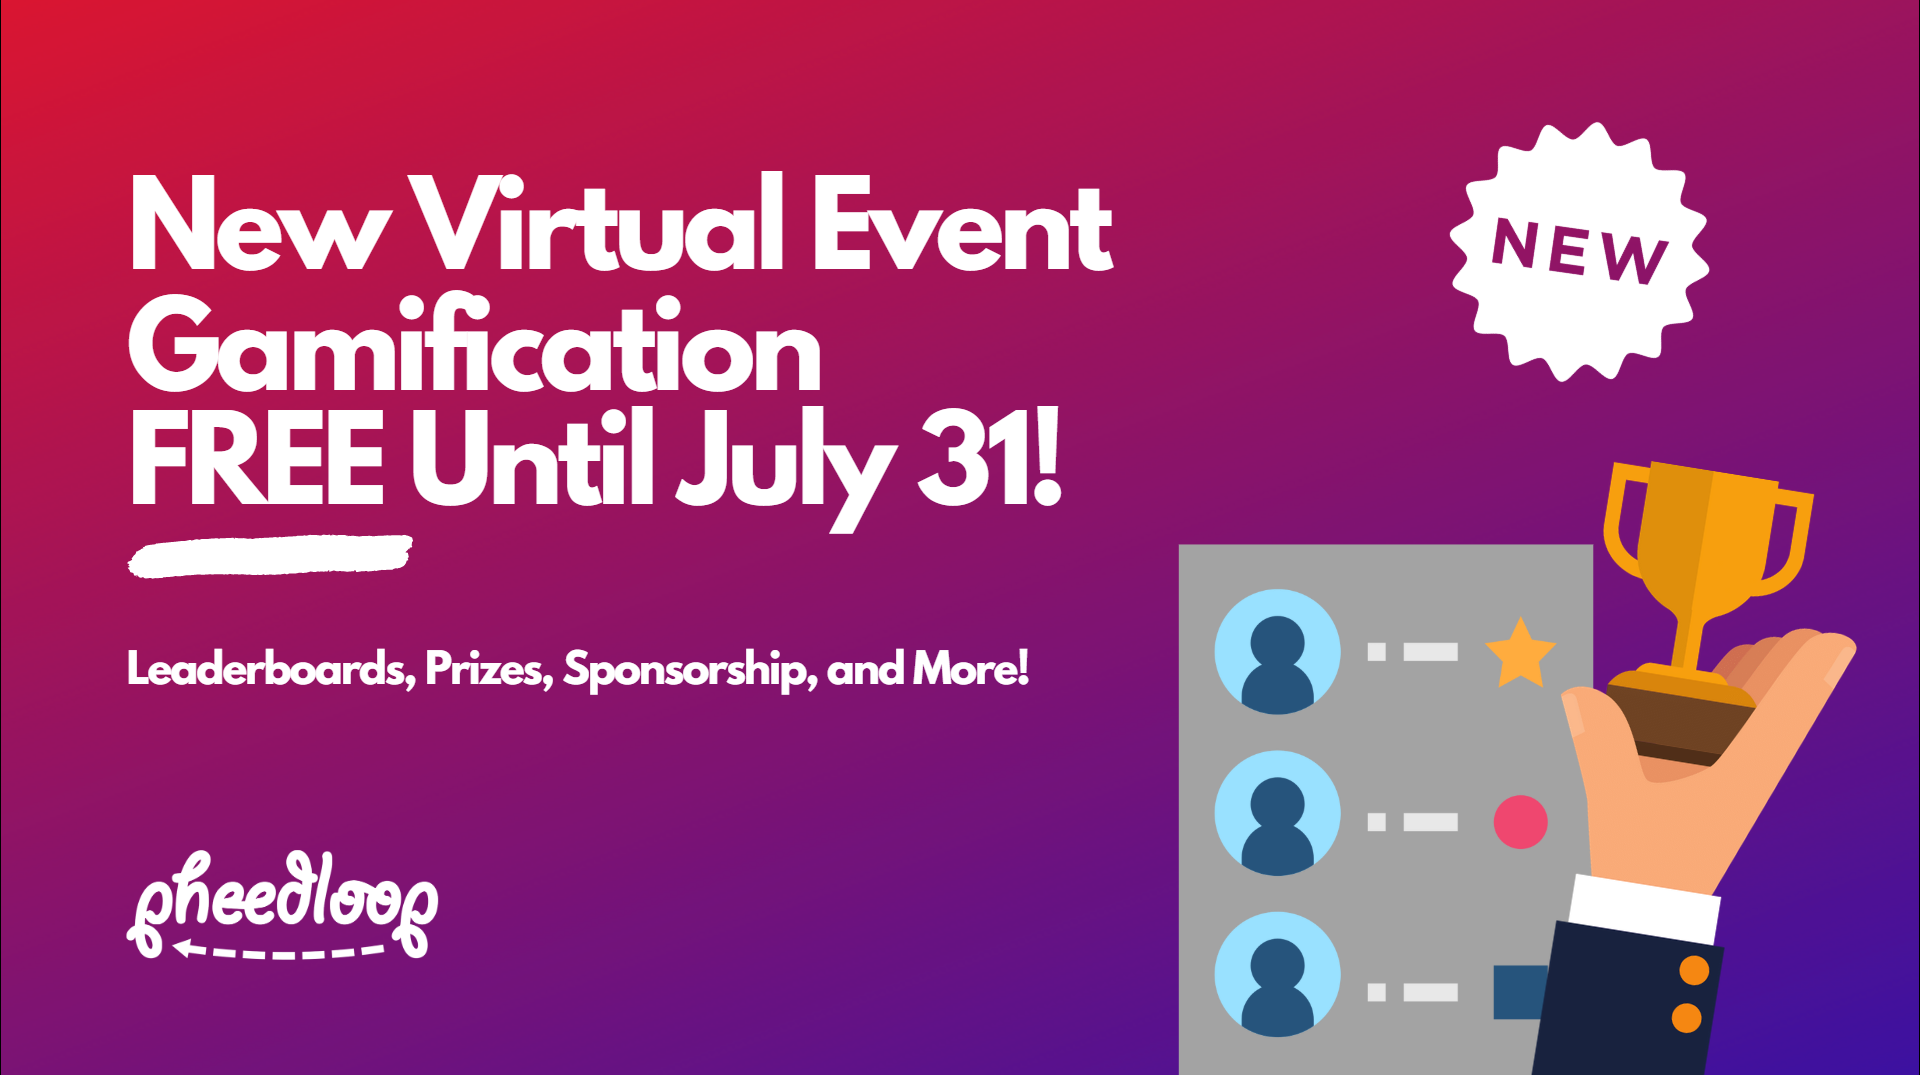 We've ported over our highly sought after gamification module to the virtual event portal, and it's better than ever. It combines leader boards, marketplaces and prize redemption, sponsorship, and lots of ways to create opportunities to engage attendees.